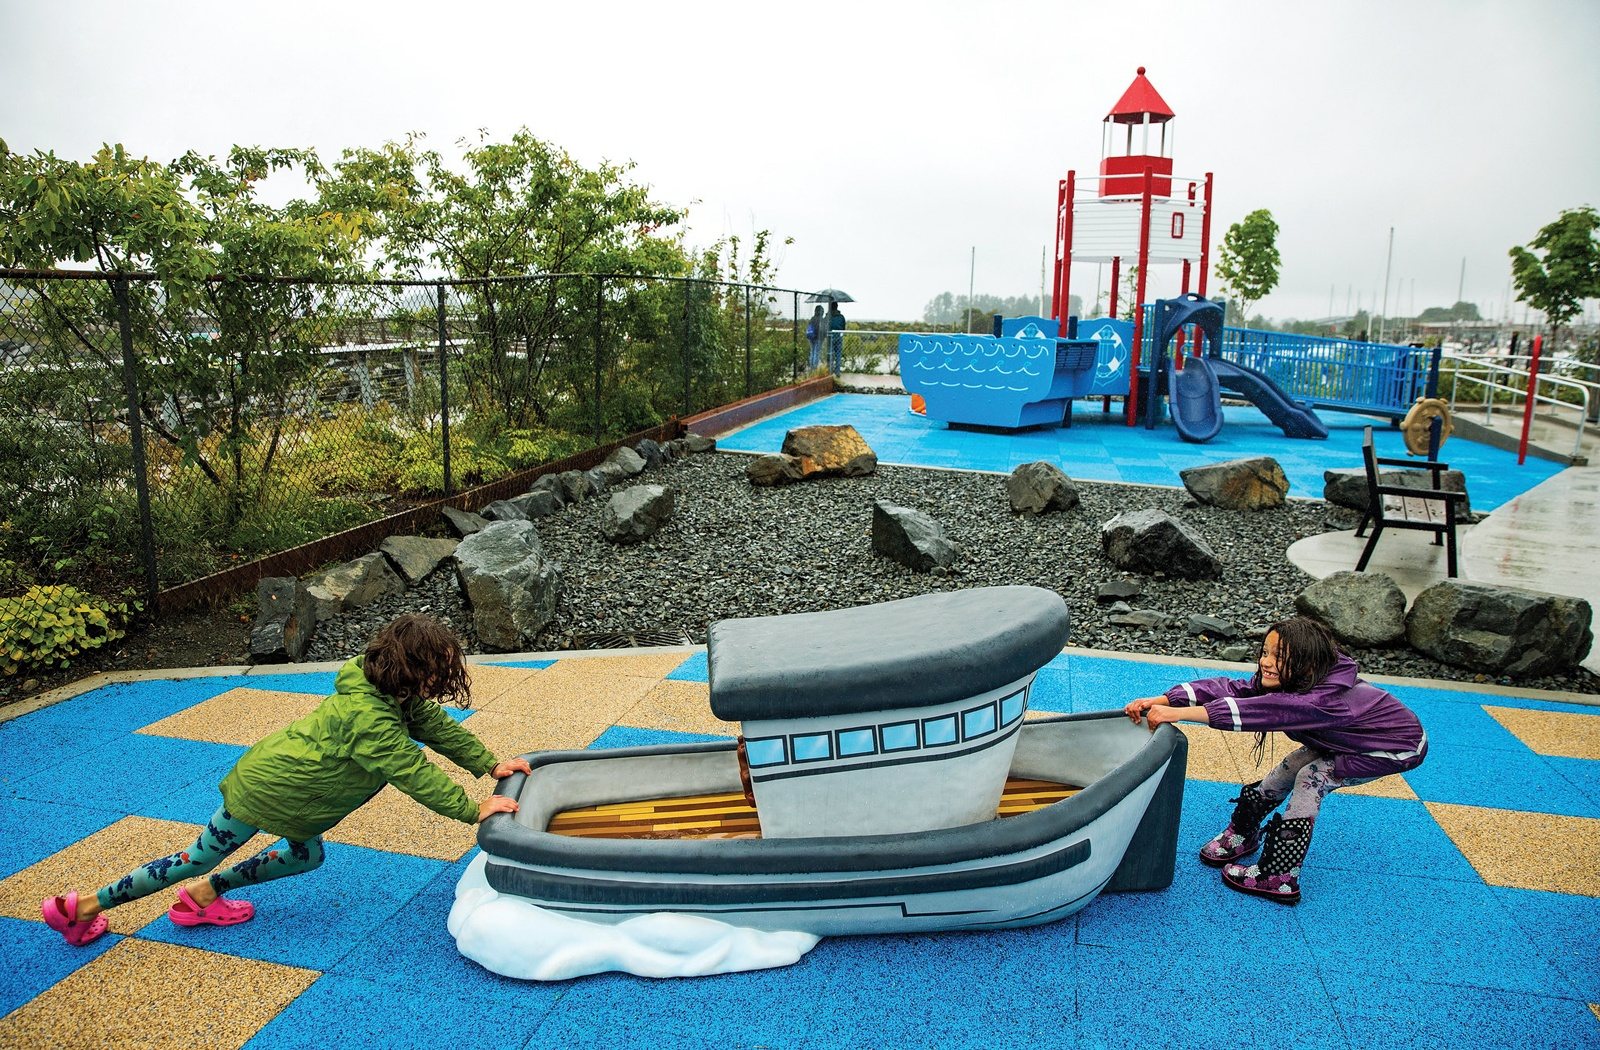 Considerations When Planning and Designing a Destination Park